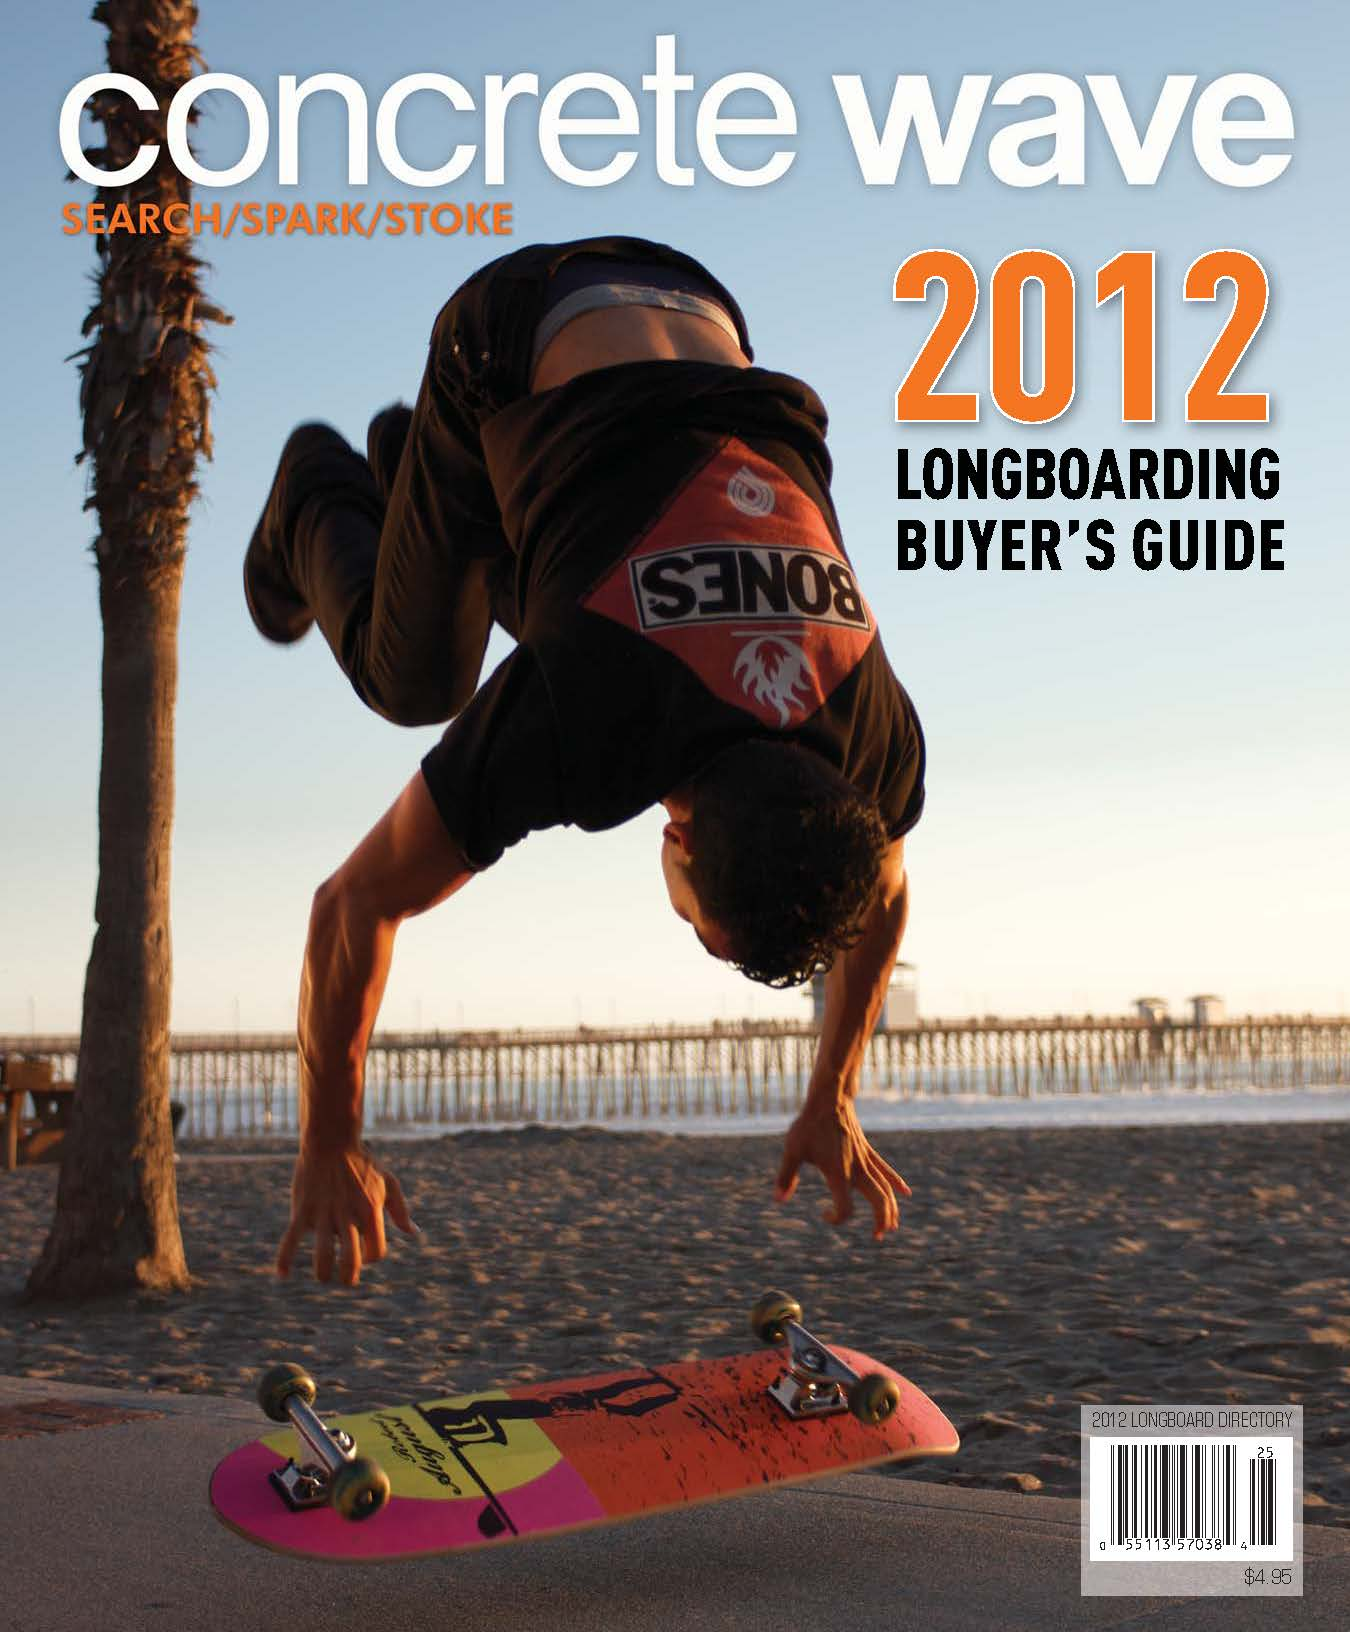 Kilian Martin on Concrete Wave's magazine cover.